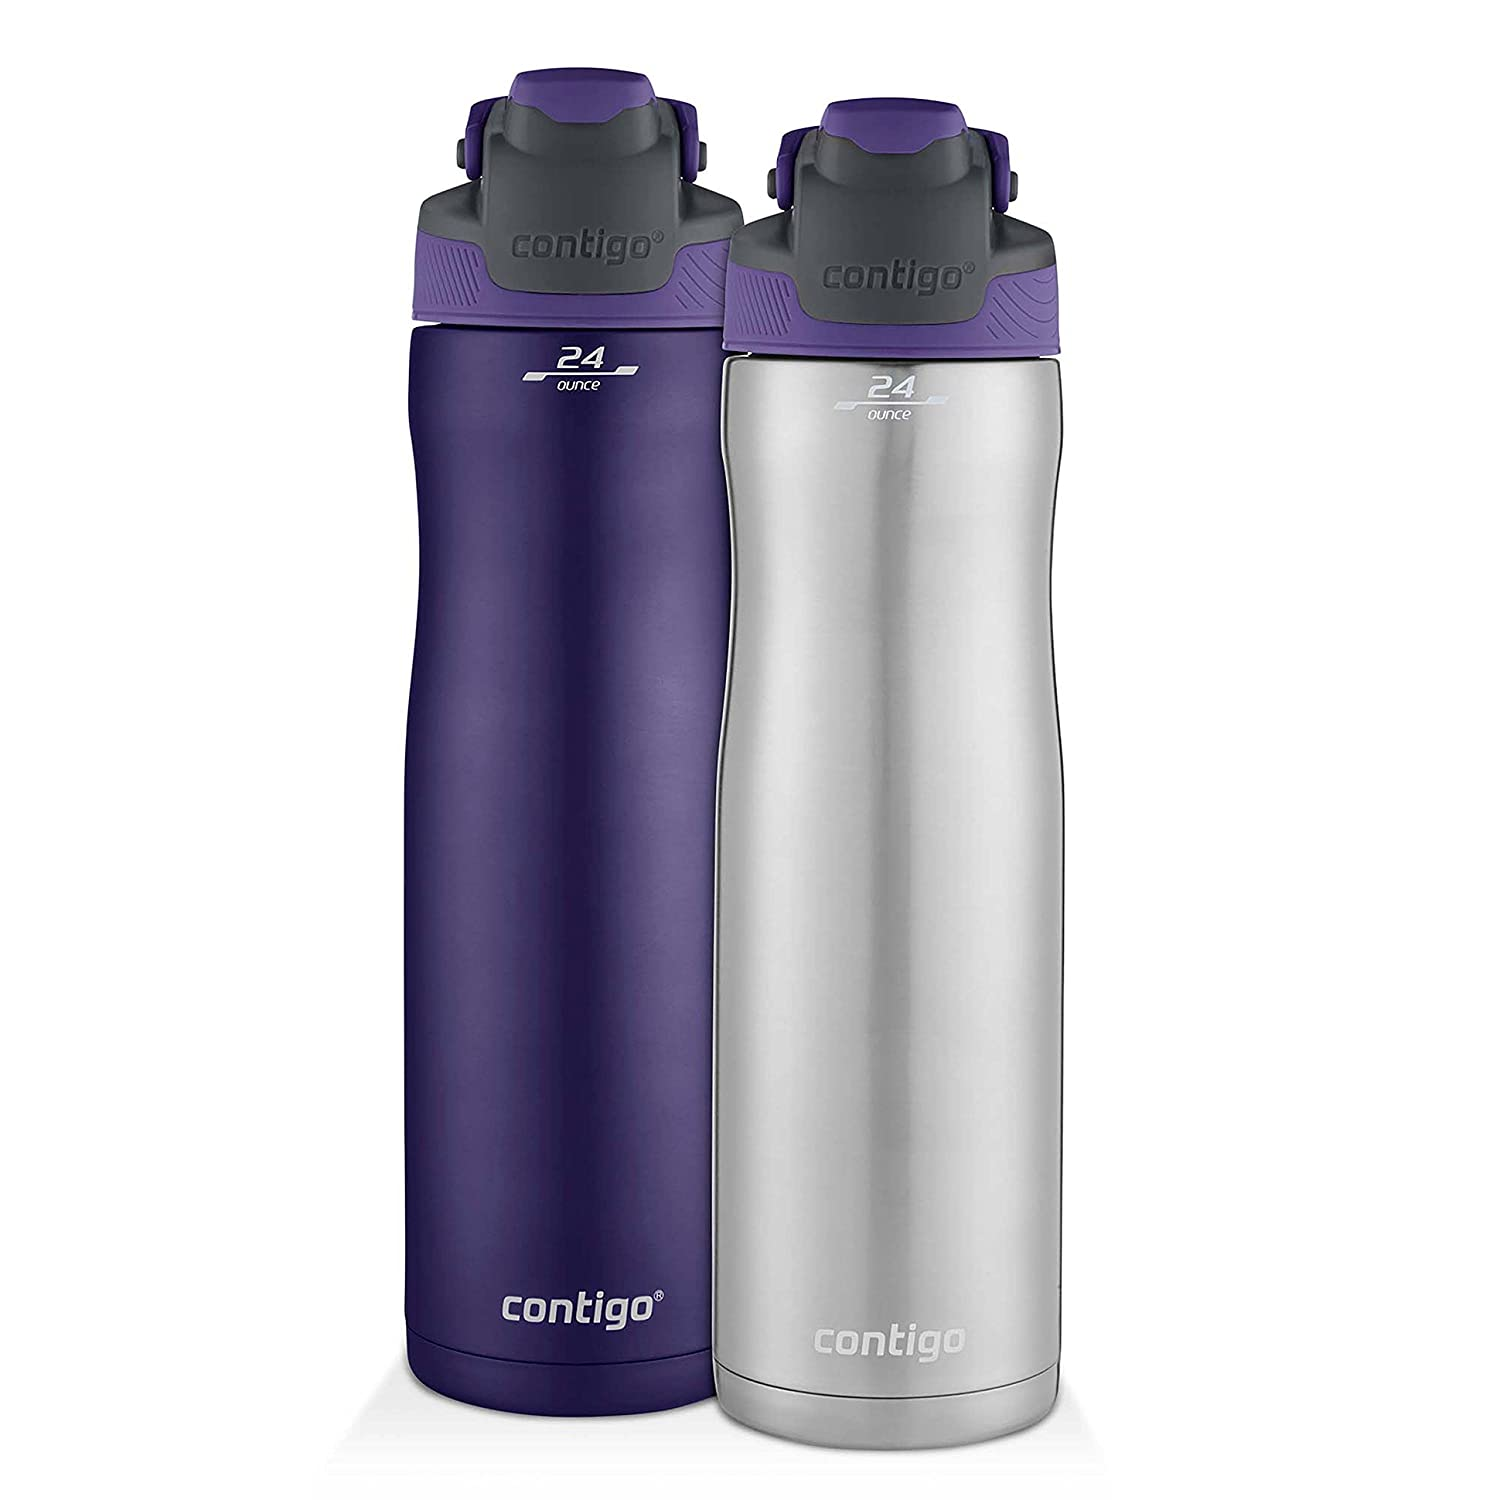 Contigo AUTOSEAL Chill Stainless Steel Water Bottles, 24 oz, SS/Grapevine & Grapevine, 2-Pack 2041390